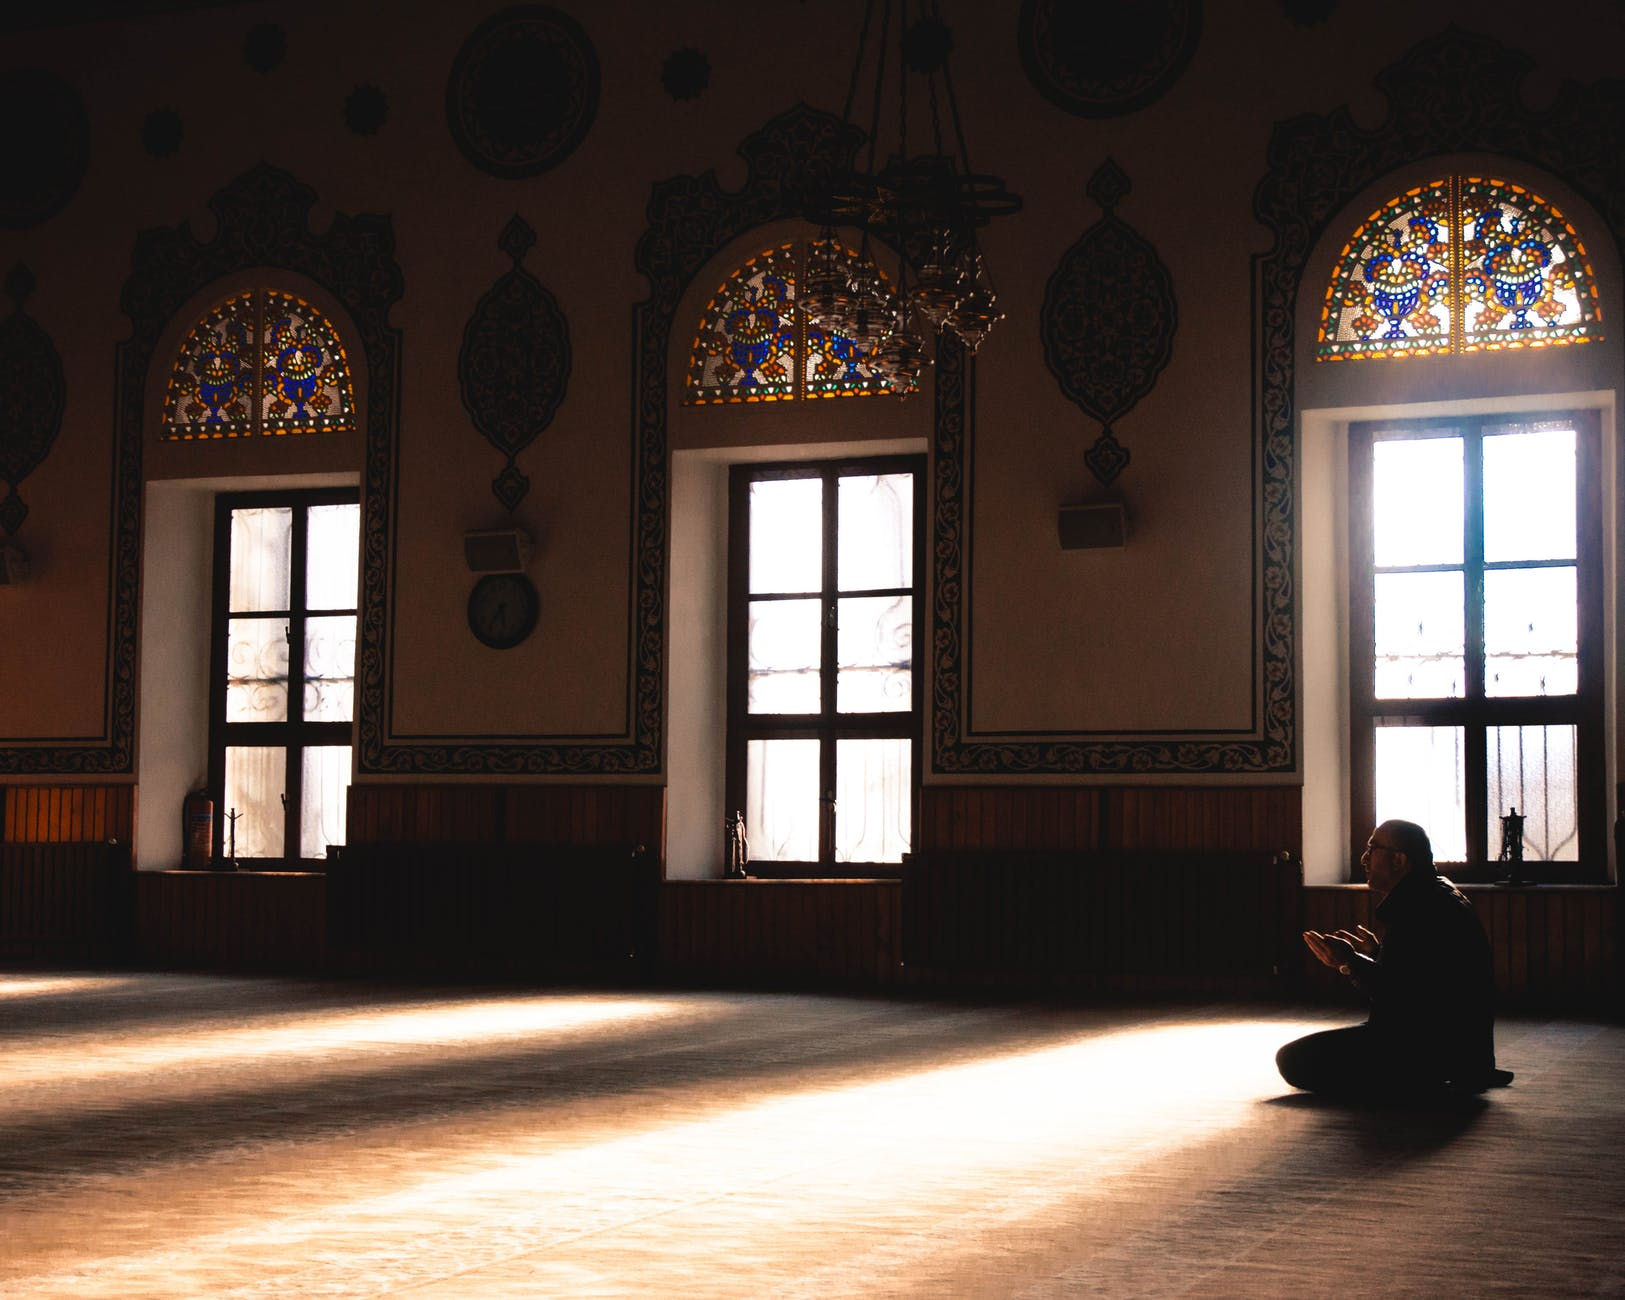 A guy praying inside the mosque